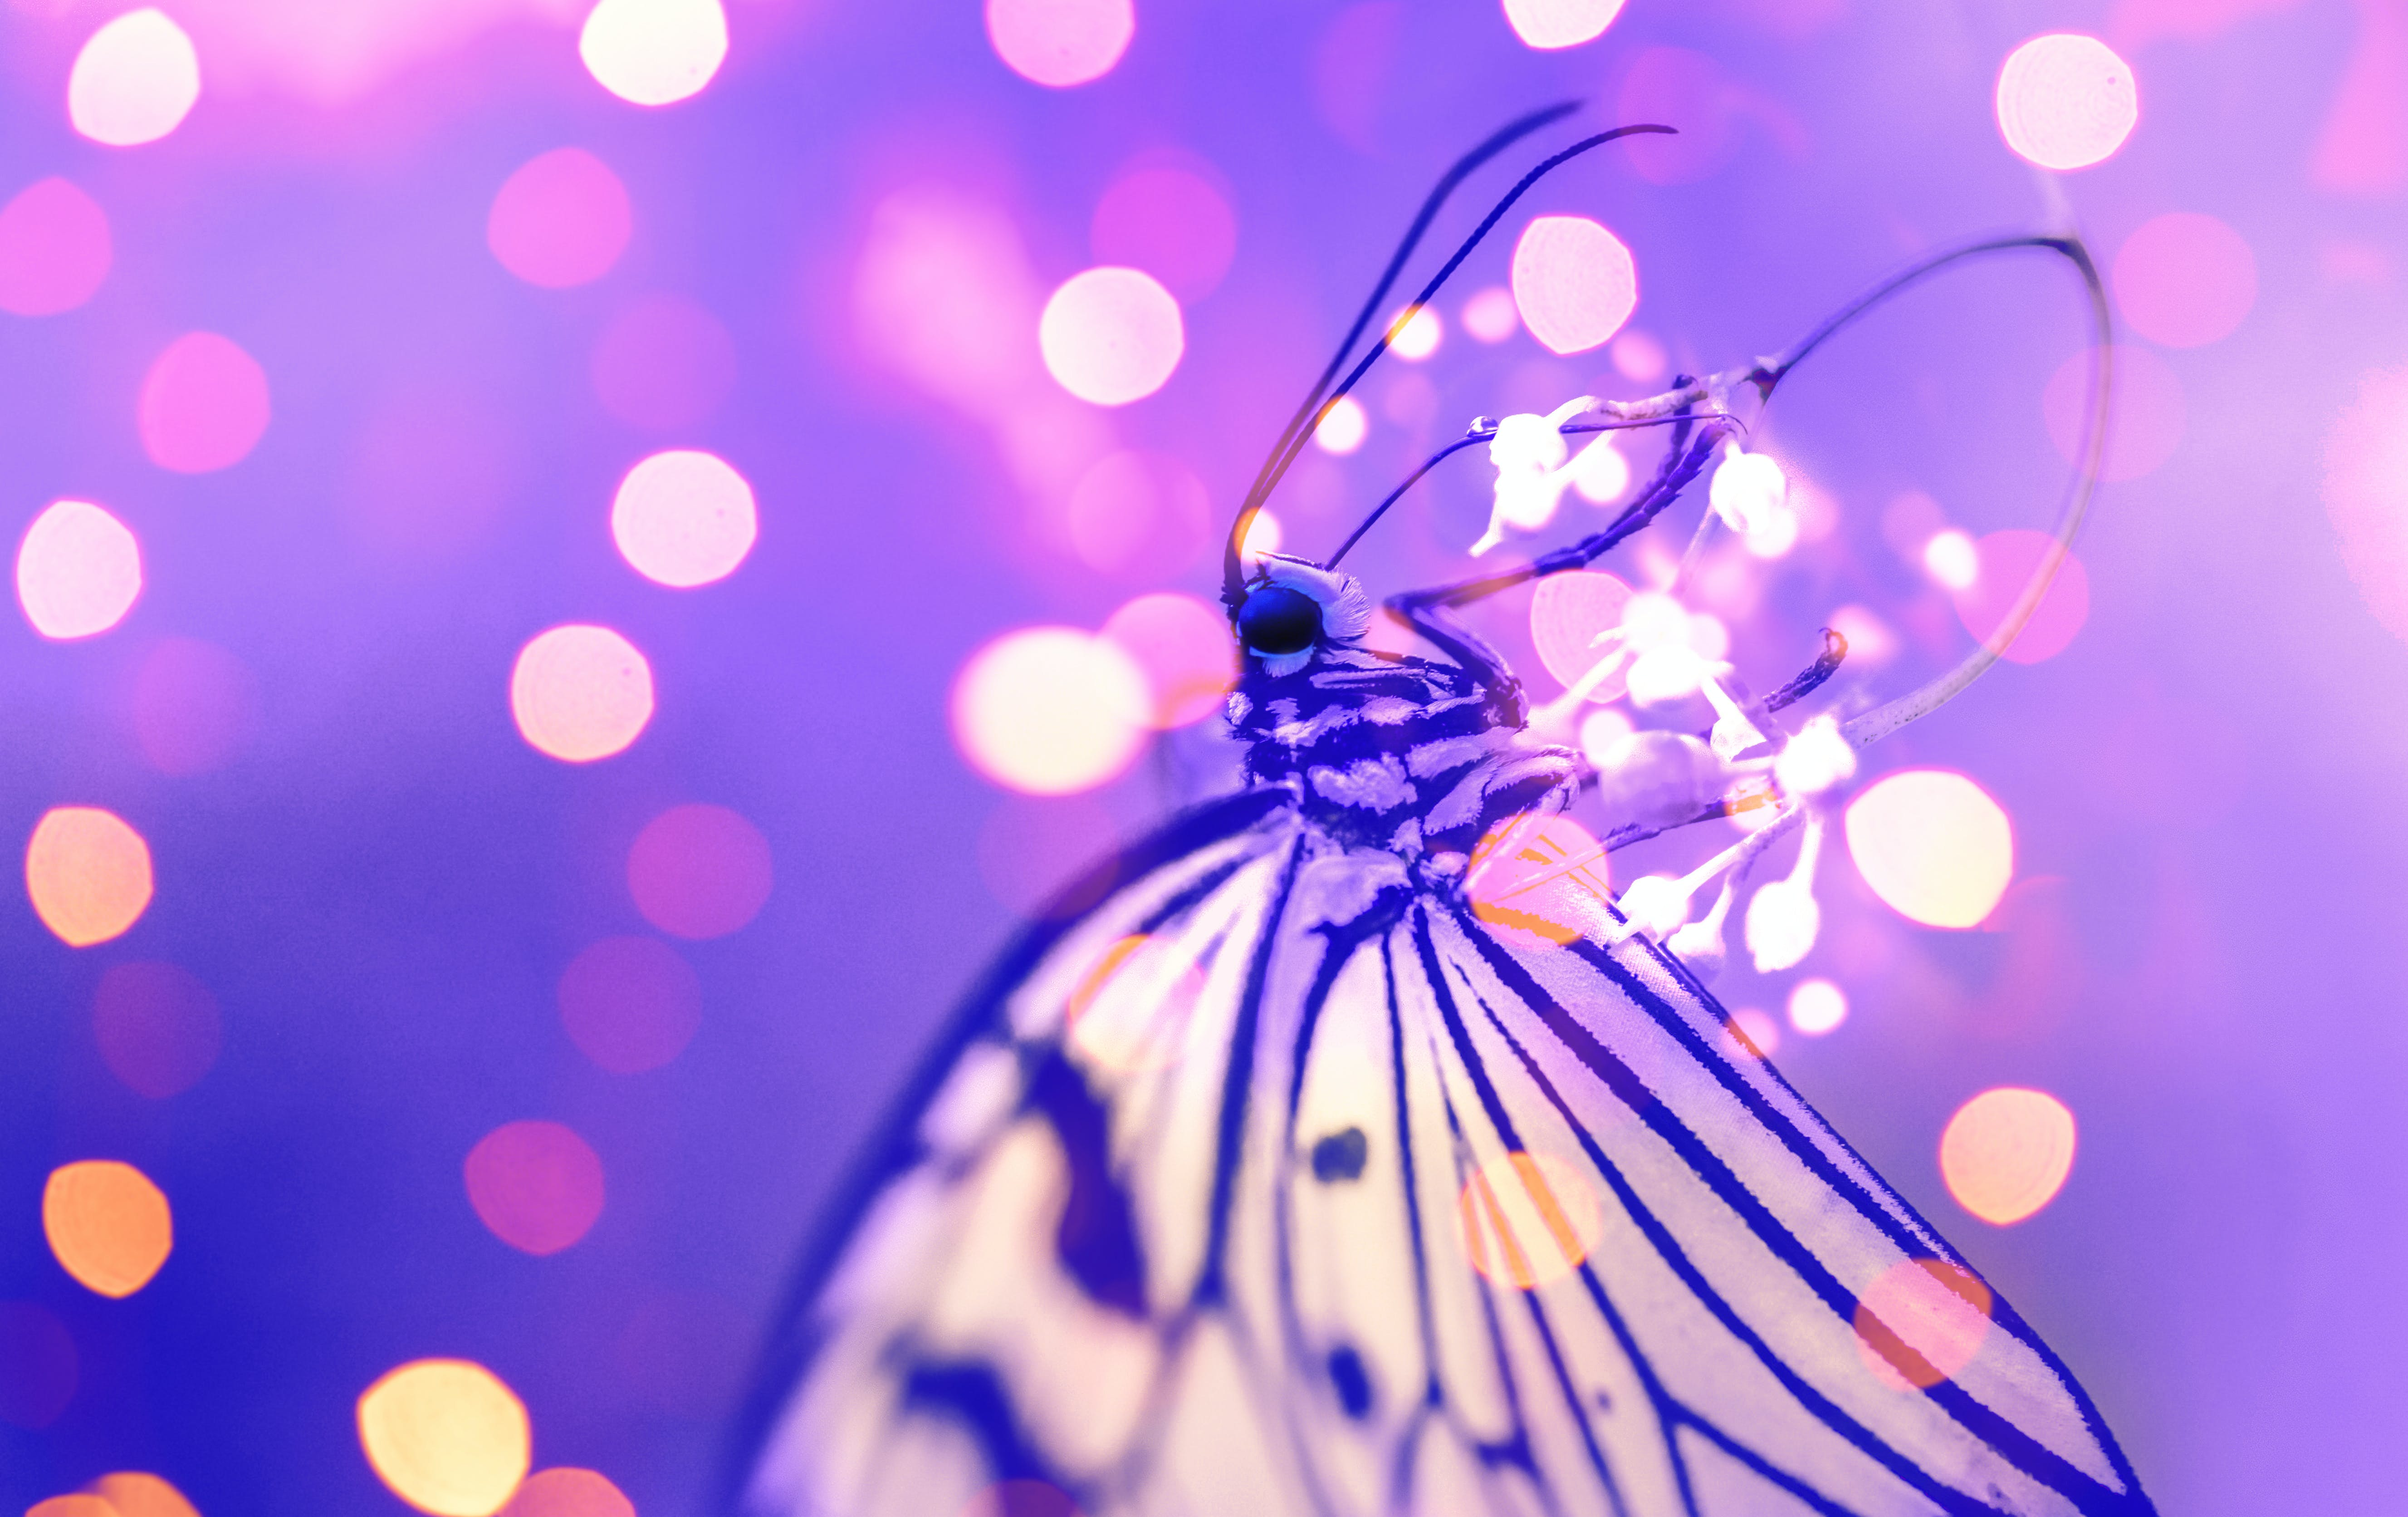 Macro Photography of Butterfly Near Lights